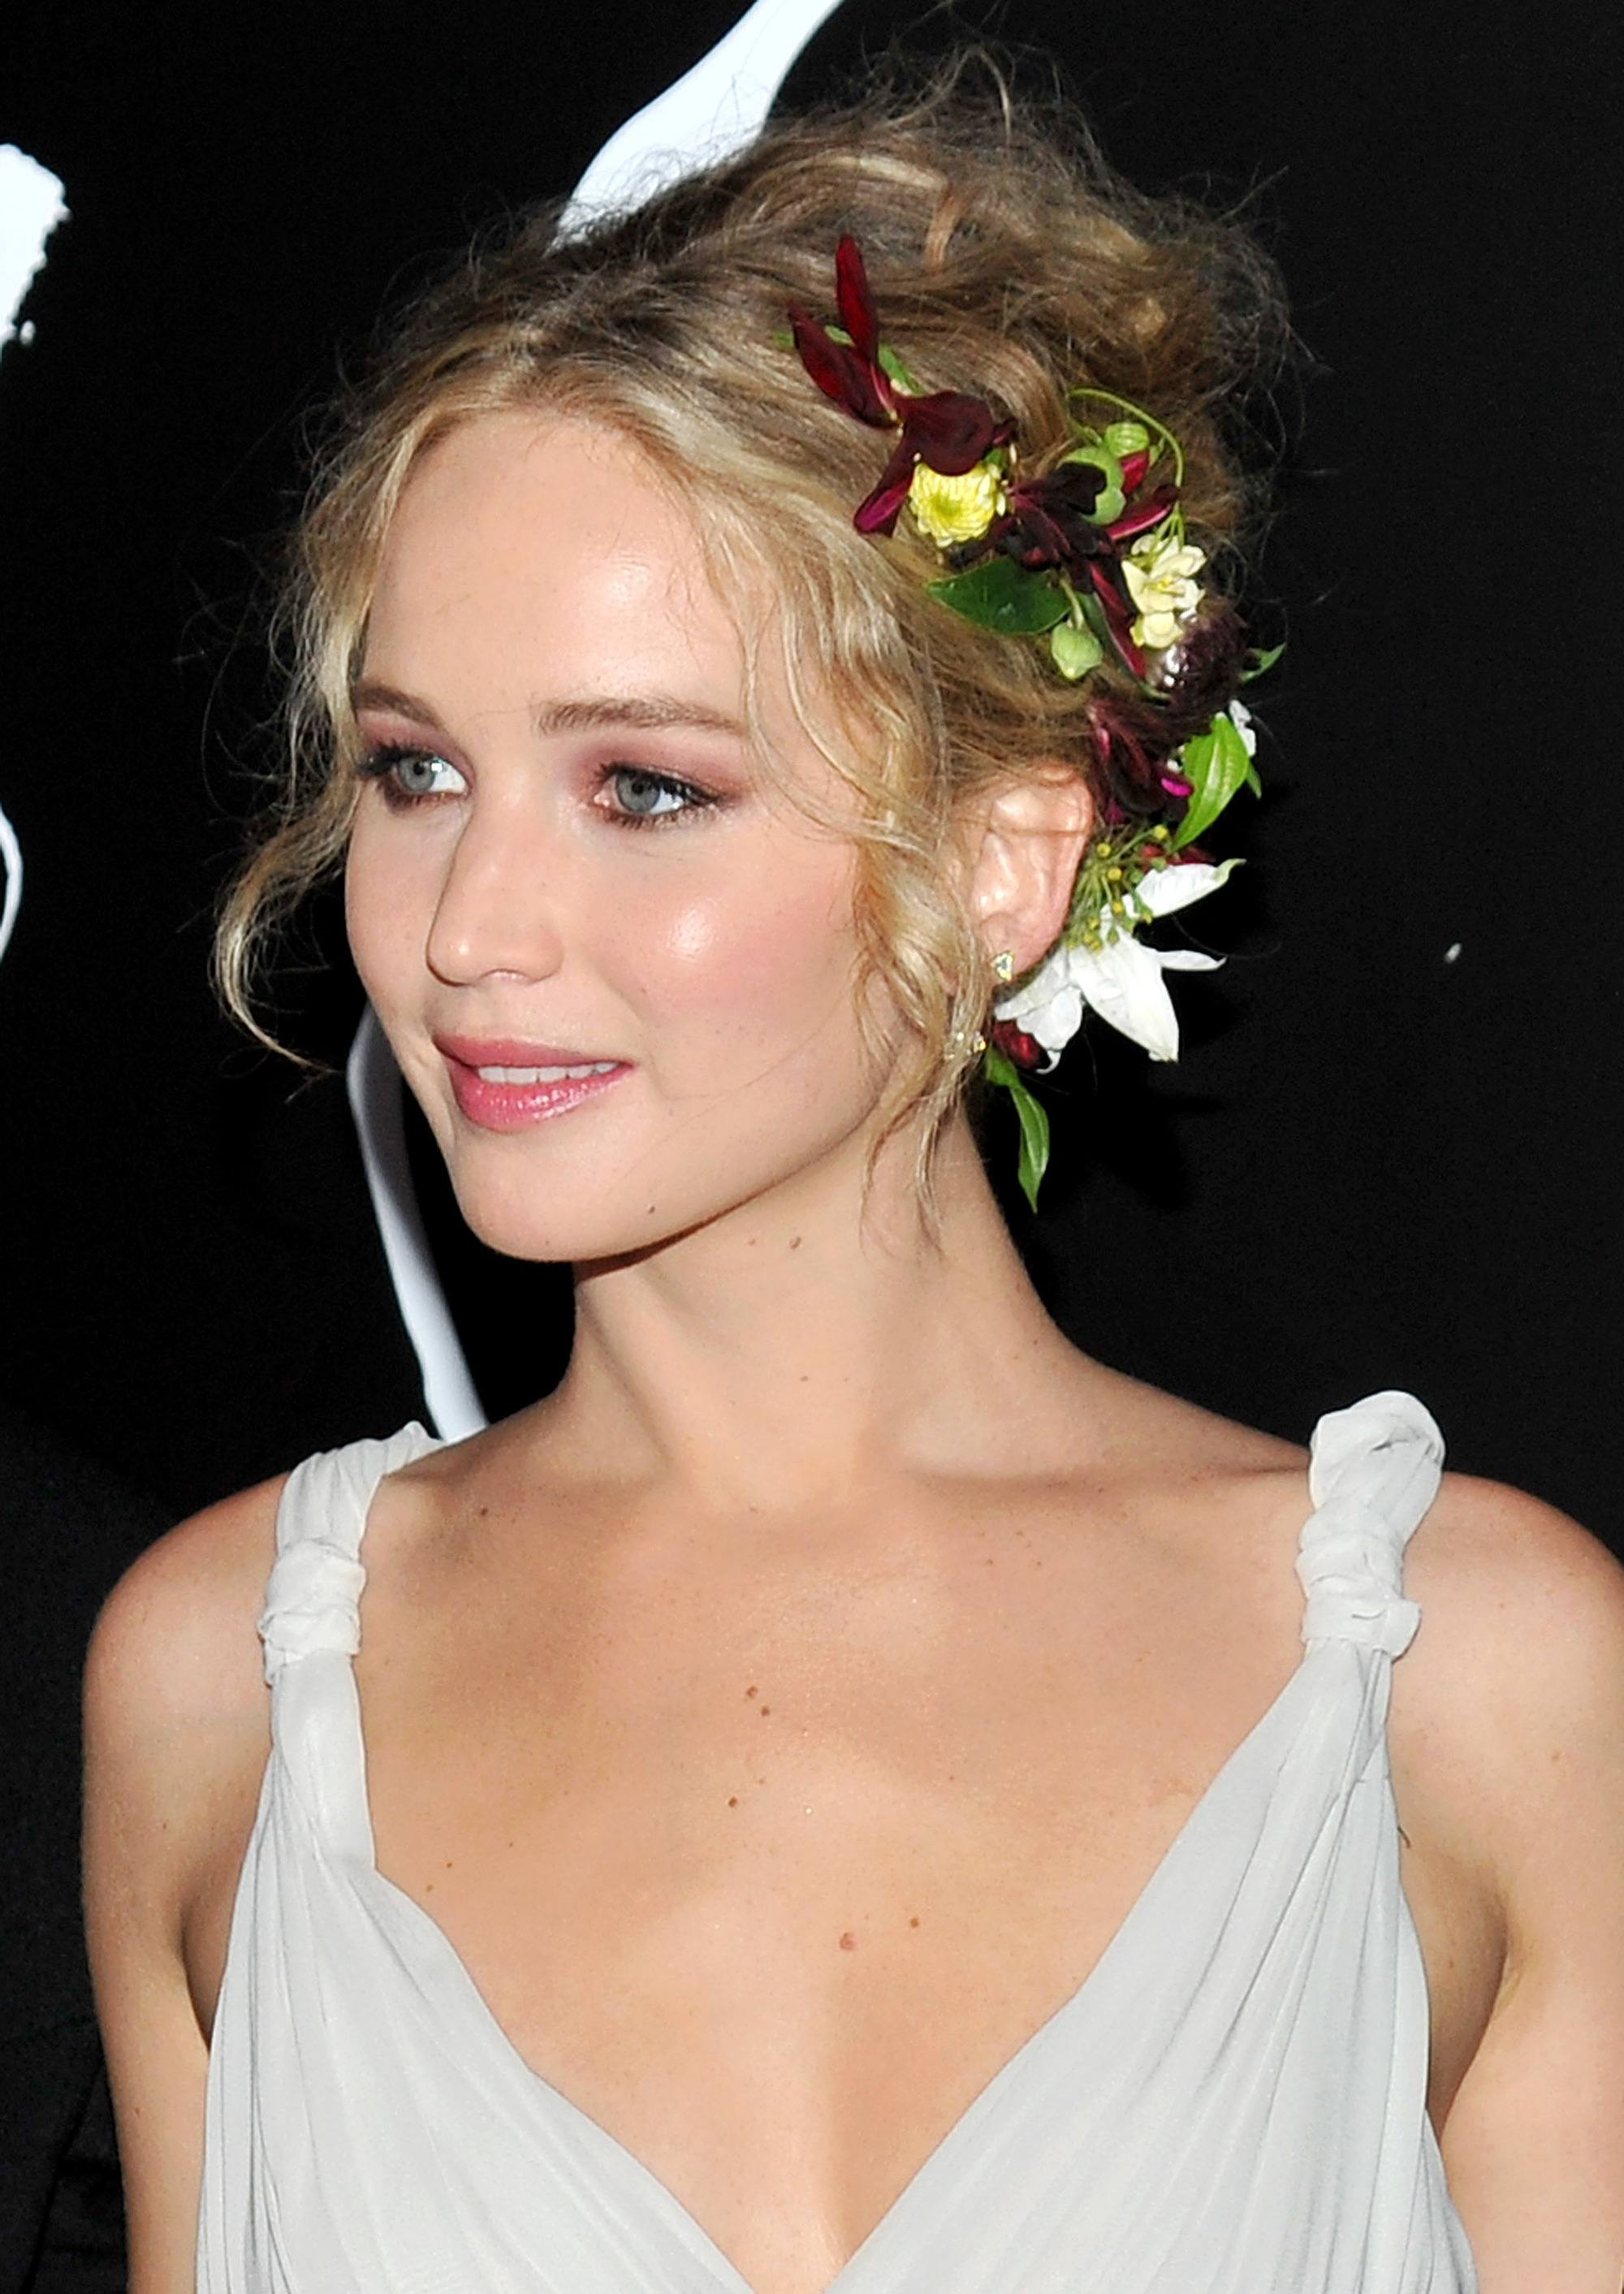 Formal hairstyles for short hair: jennifer lawrence with blonde hair in wavy updo with hair accessory